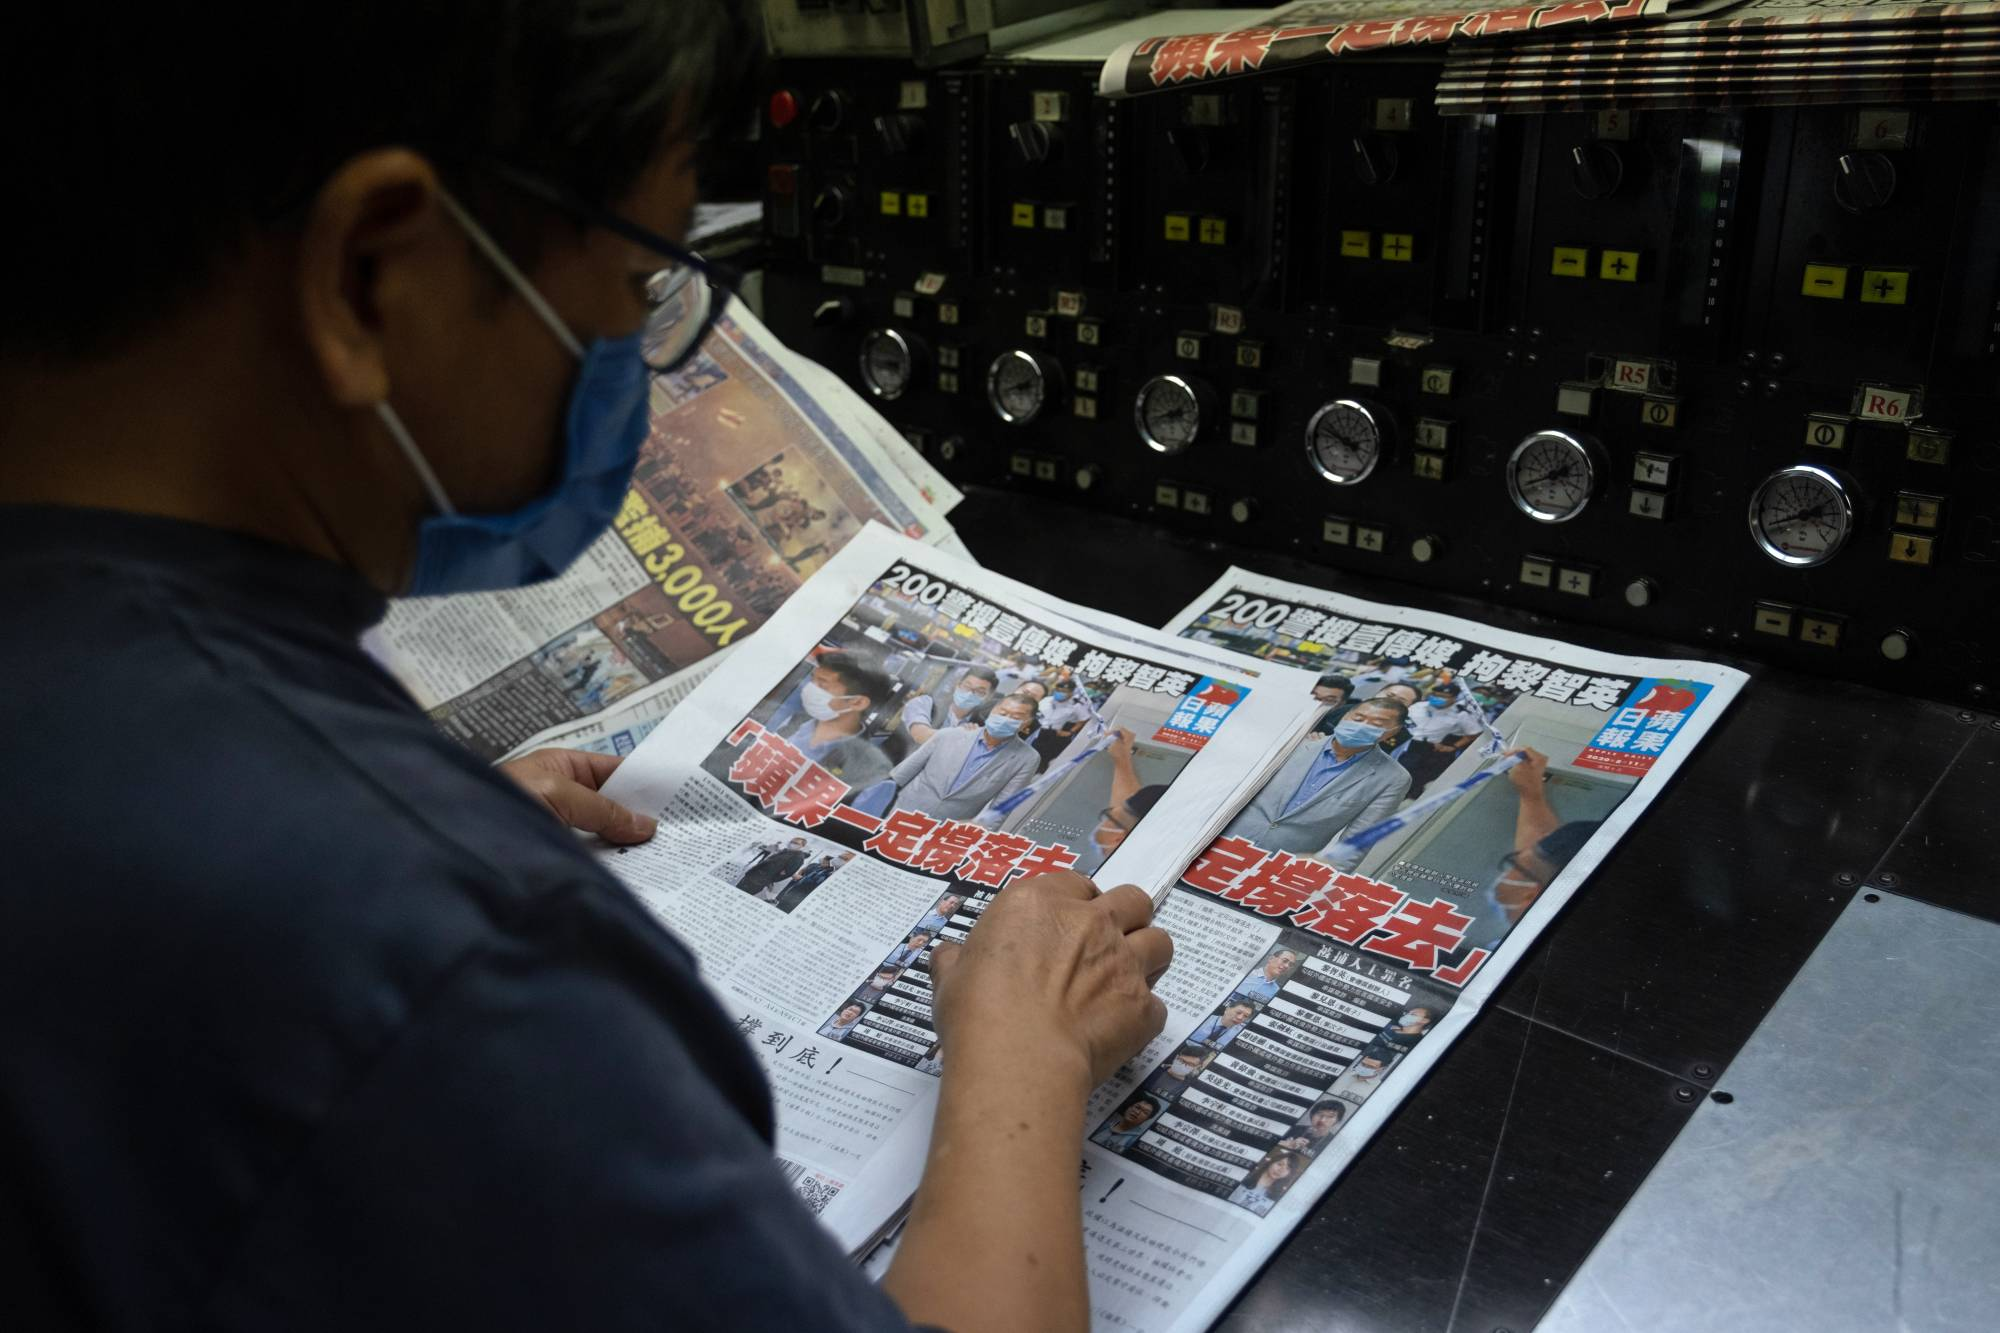 An employee inspects the front page of the Apple Daily newspaper, published by Next Digital Ltd., at the company's printing facility in Hong Kong on Tuesday. Hong Kong police arrested Next Digital Chairman Jimmy Lai on Monday and raided the offices of his flagship newspaper the Apple Daily. | BLOOMBERG